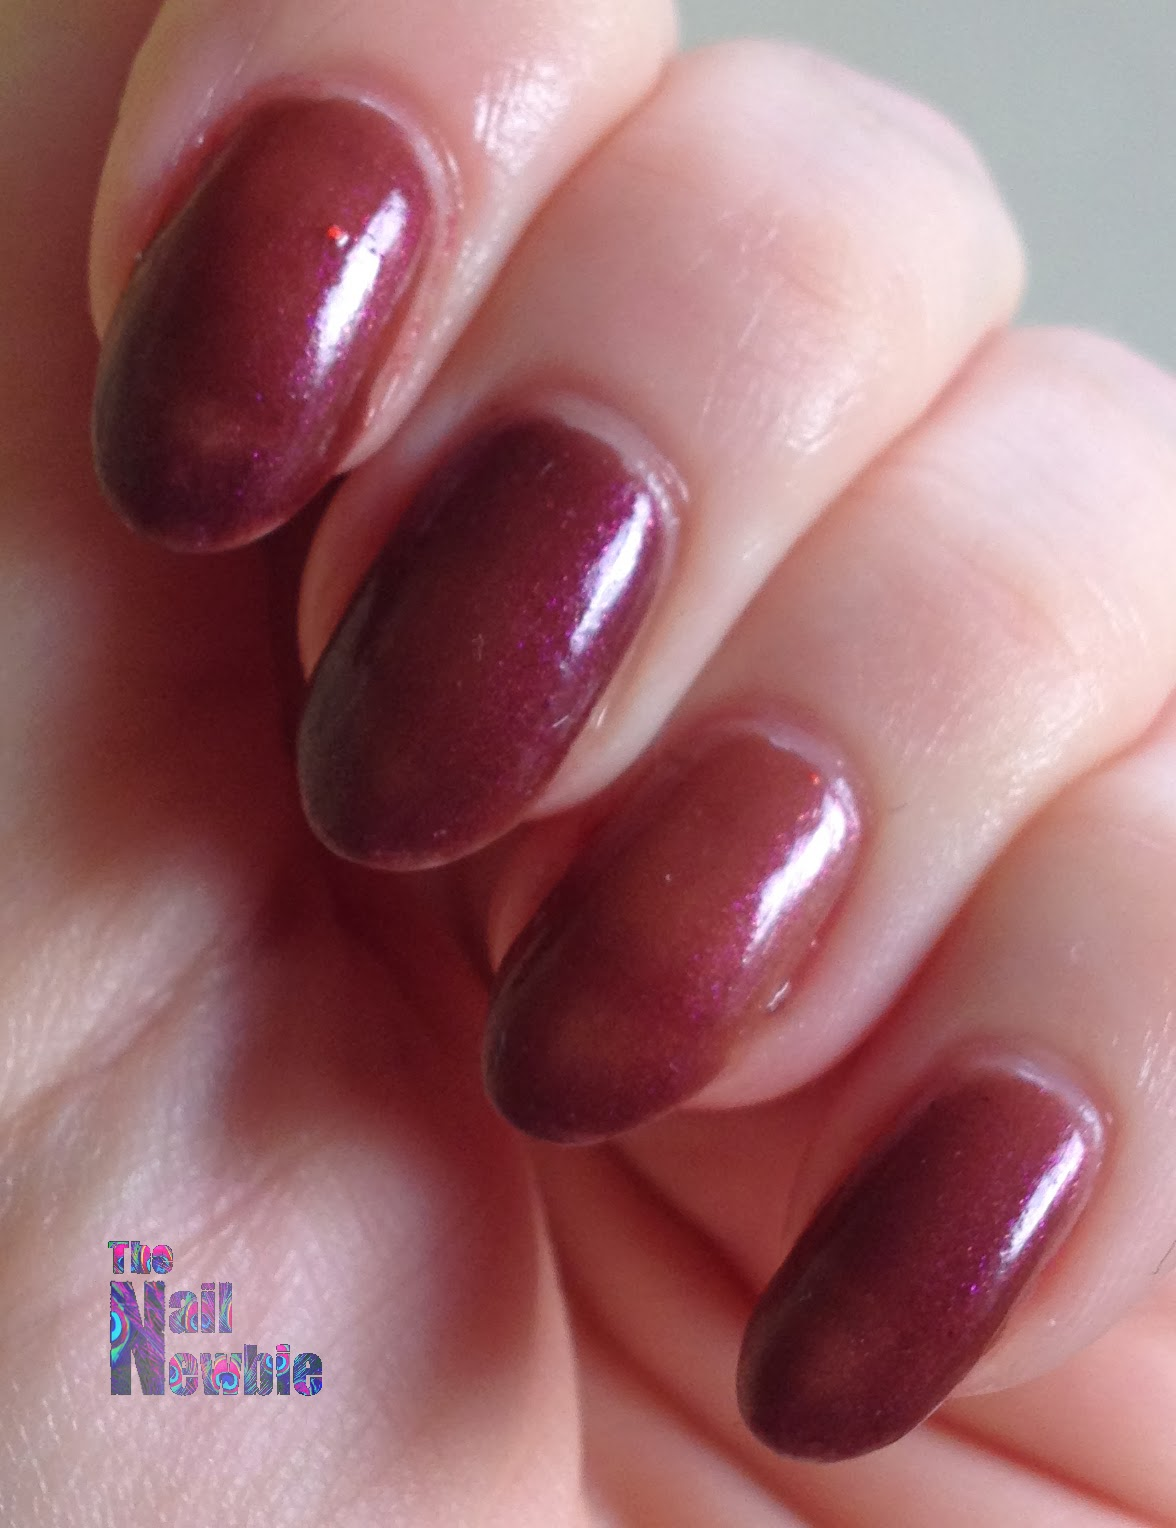 Nail Newbie Notd: Nail Newbie: Introducing Lacquerdaisical